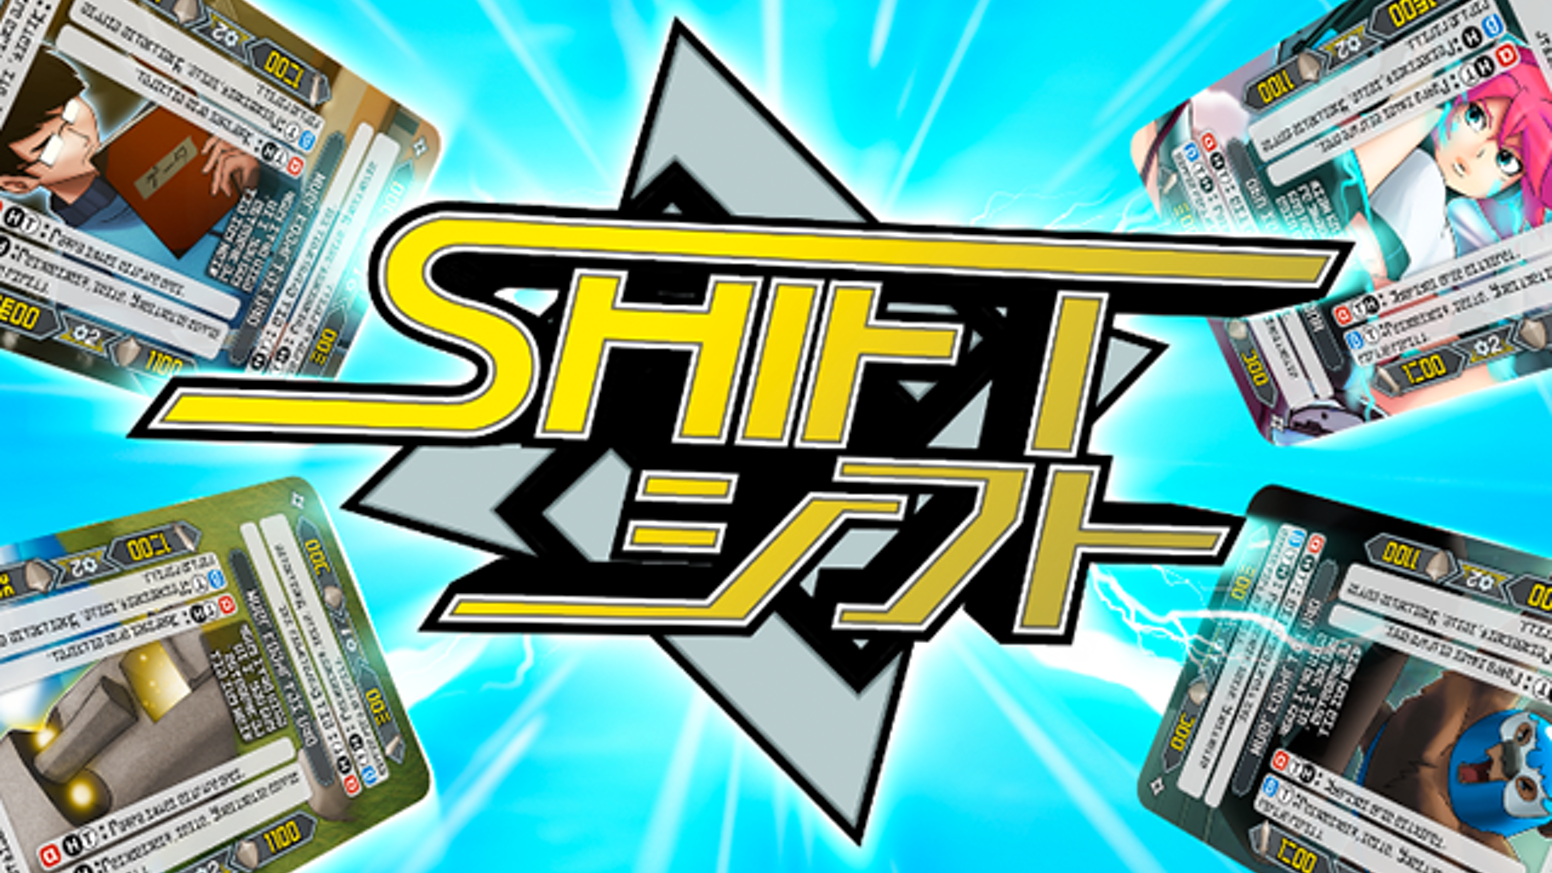 Shift is the collectable card game where you only need to collect one card! Let your spirit burn as you shift gears towards victory!